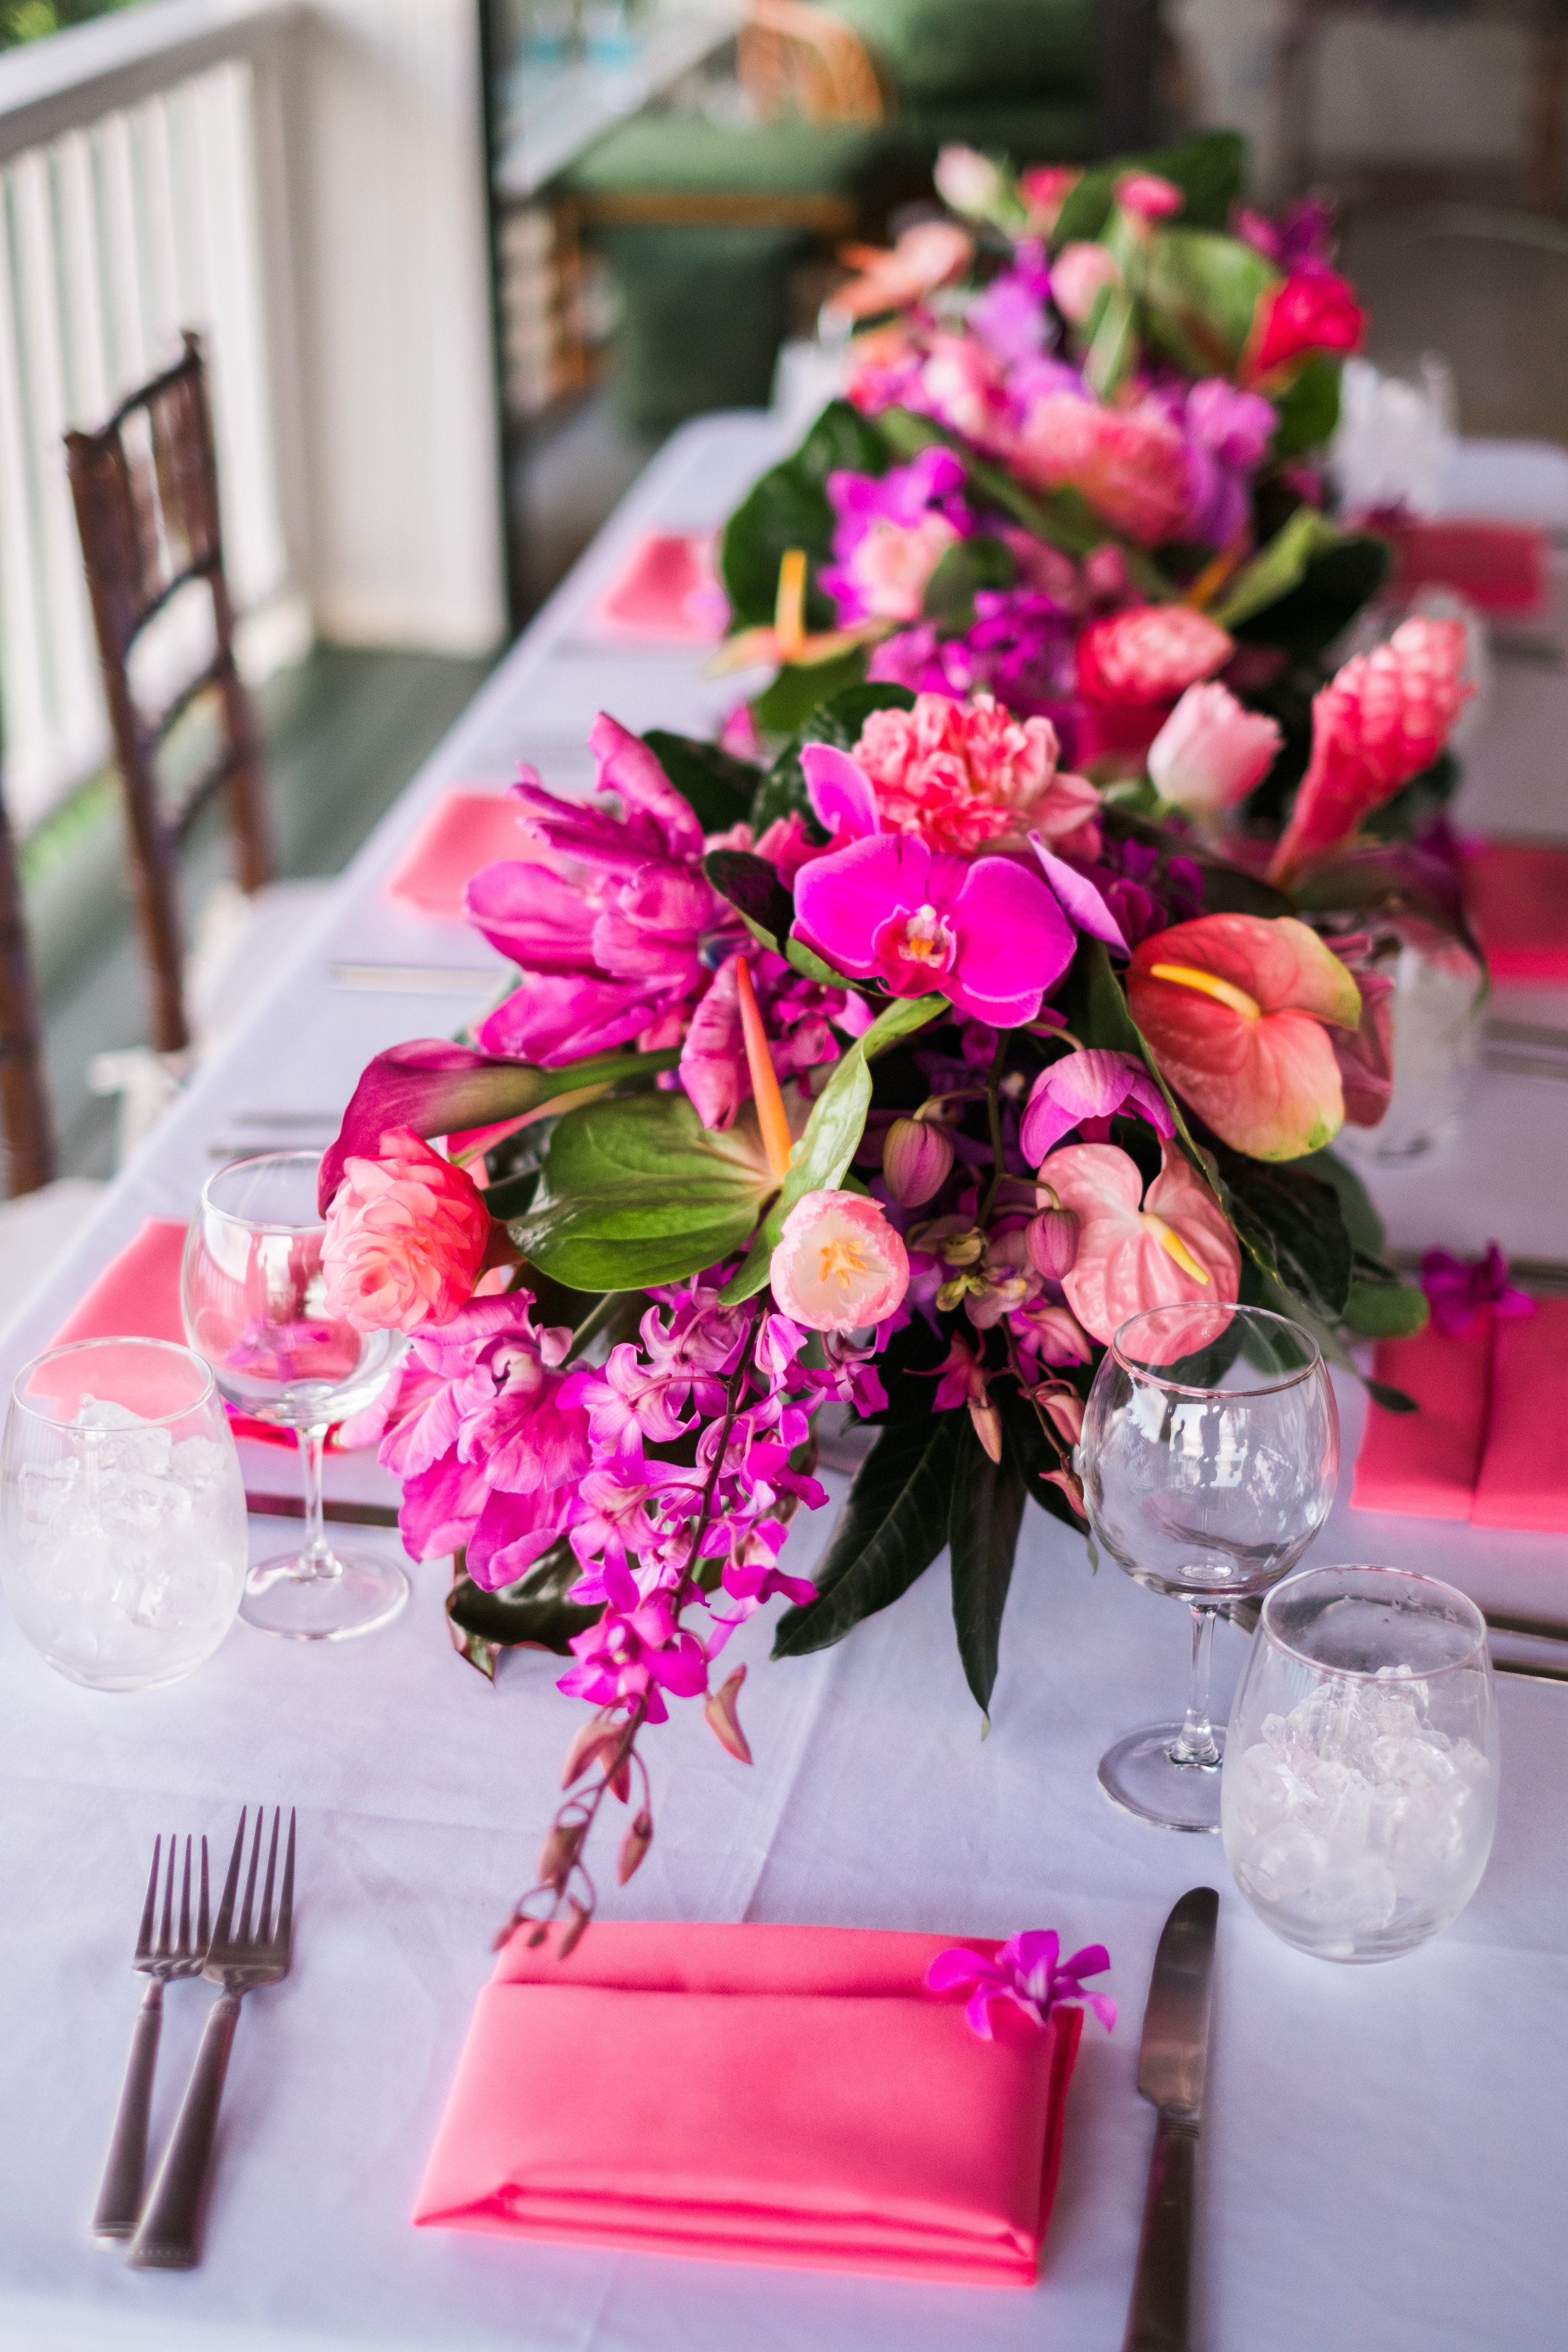 Vibrant Centerpieces Decorate this Intimate Elopement Dinner Party